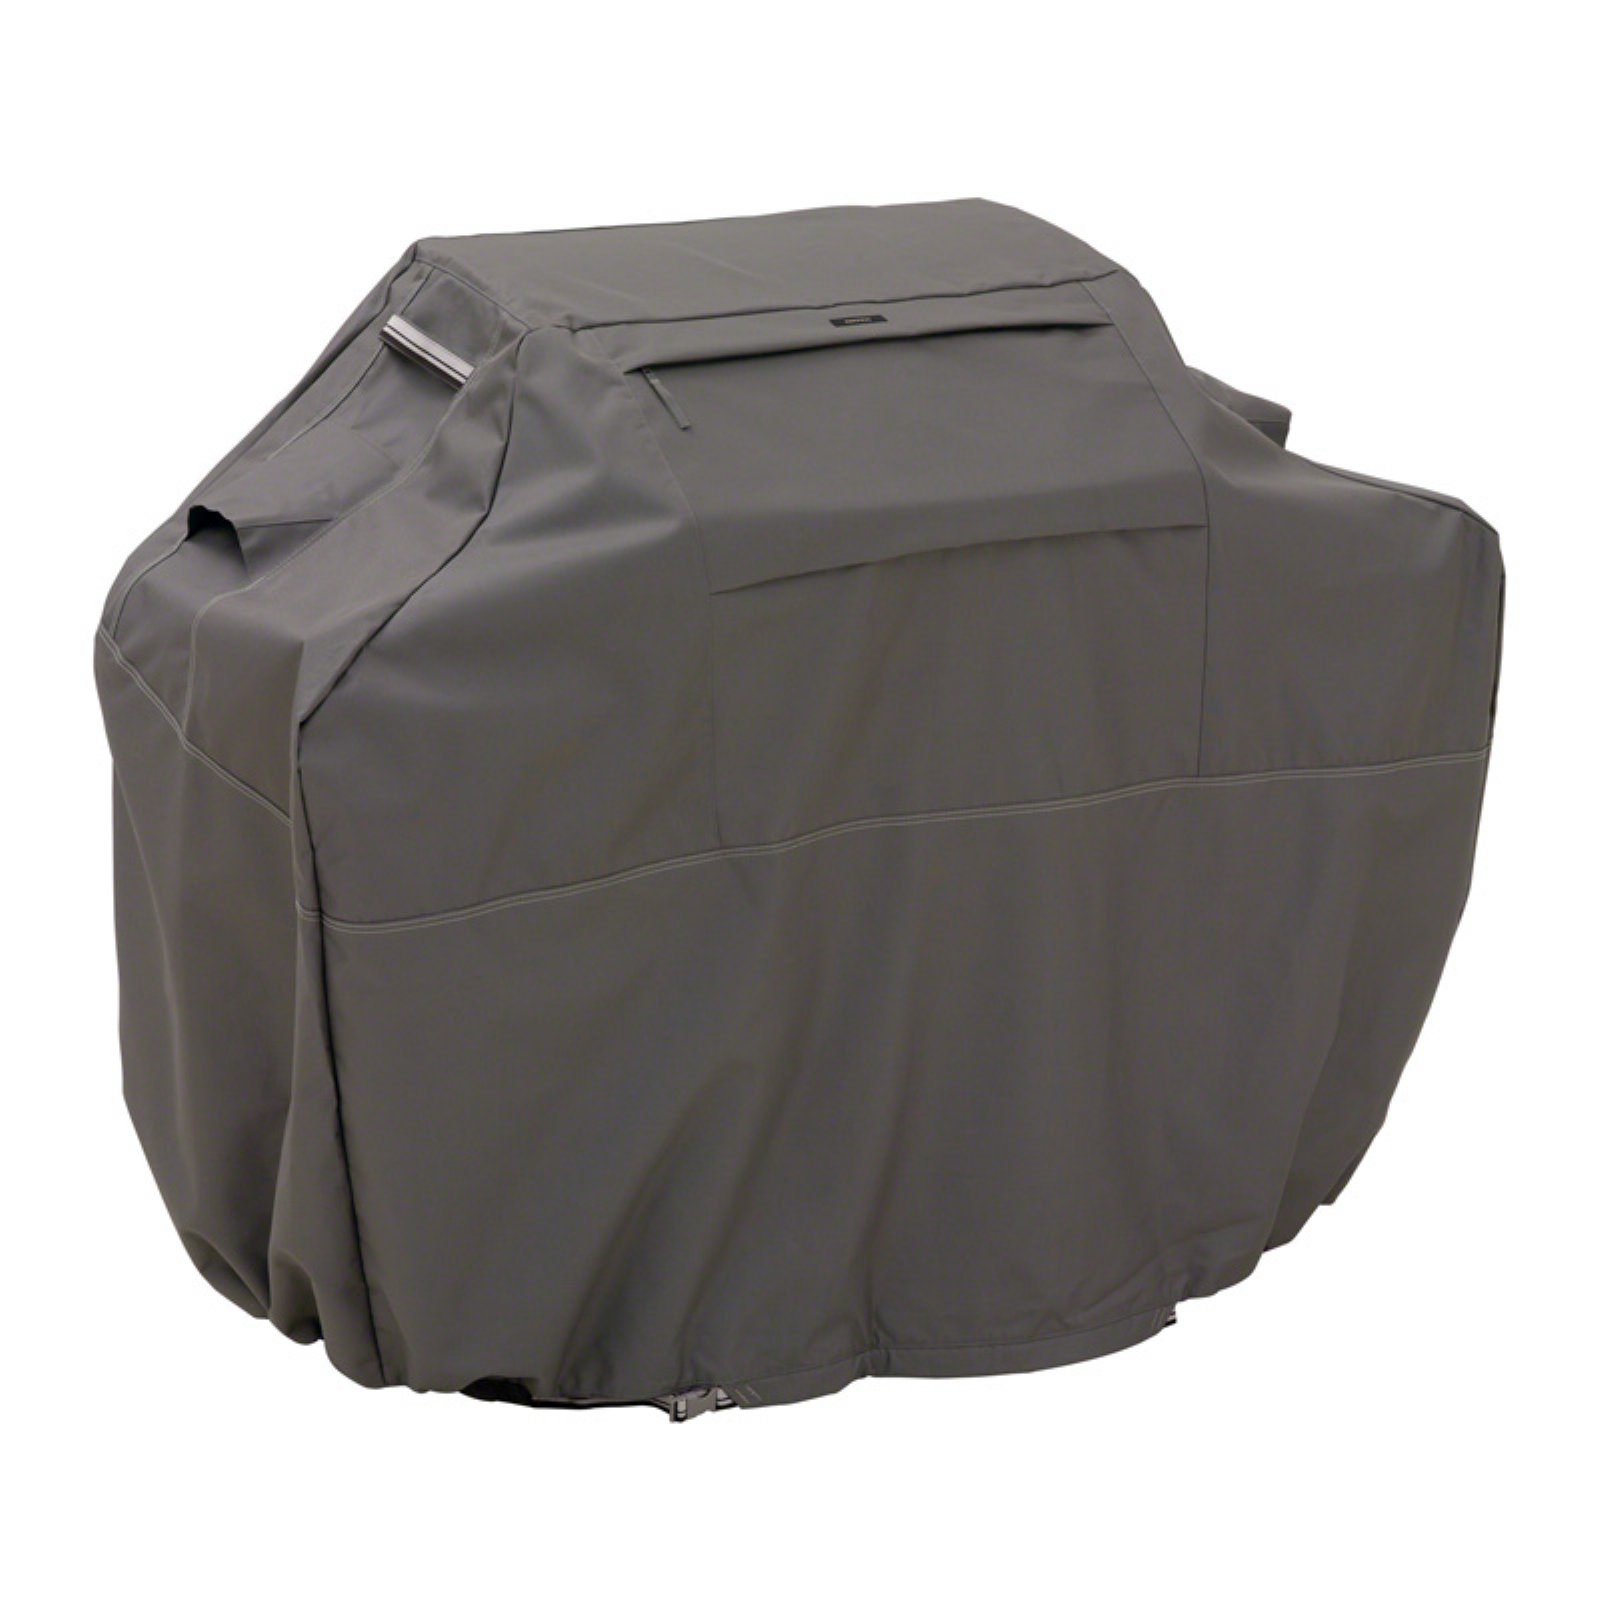 Classic Accessories Ravenna Grill Cover Taupe by Grill Covers